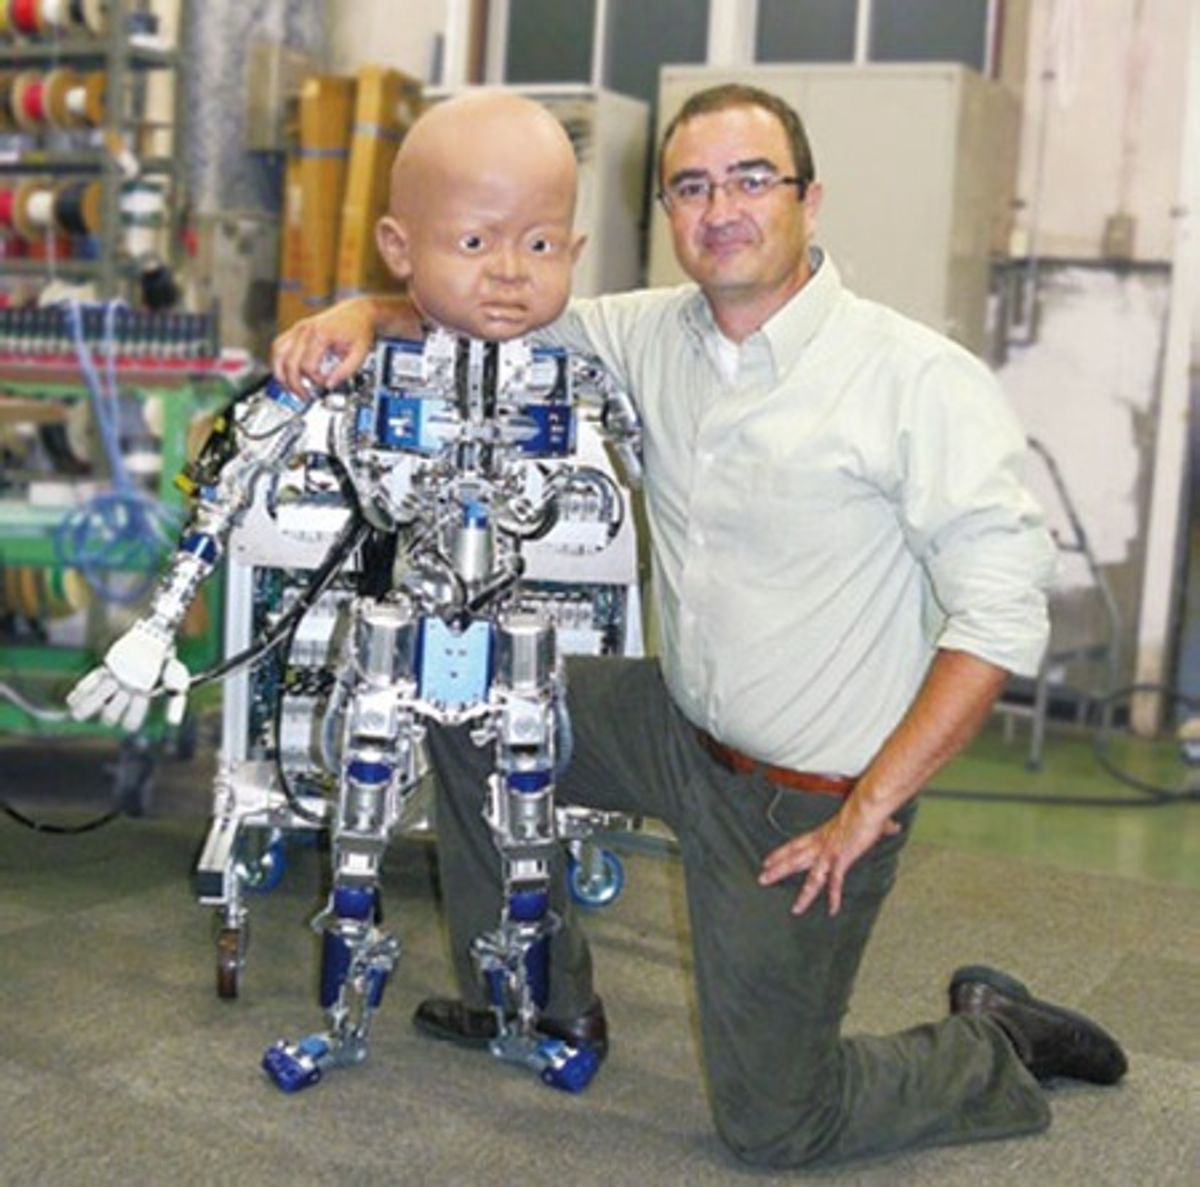 Robot Babies Are Always A Mistake